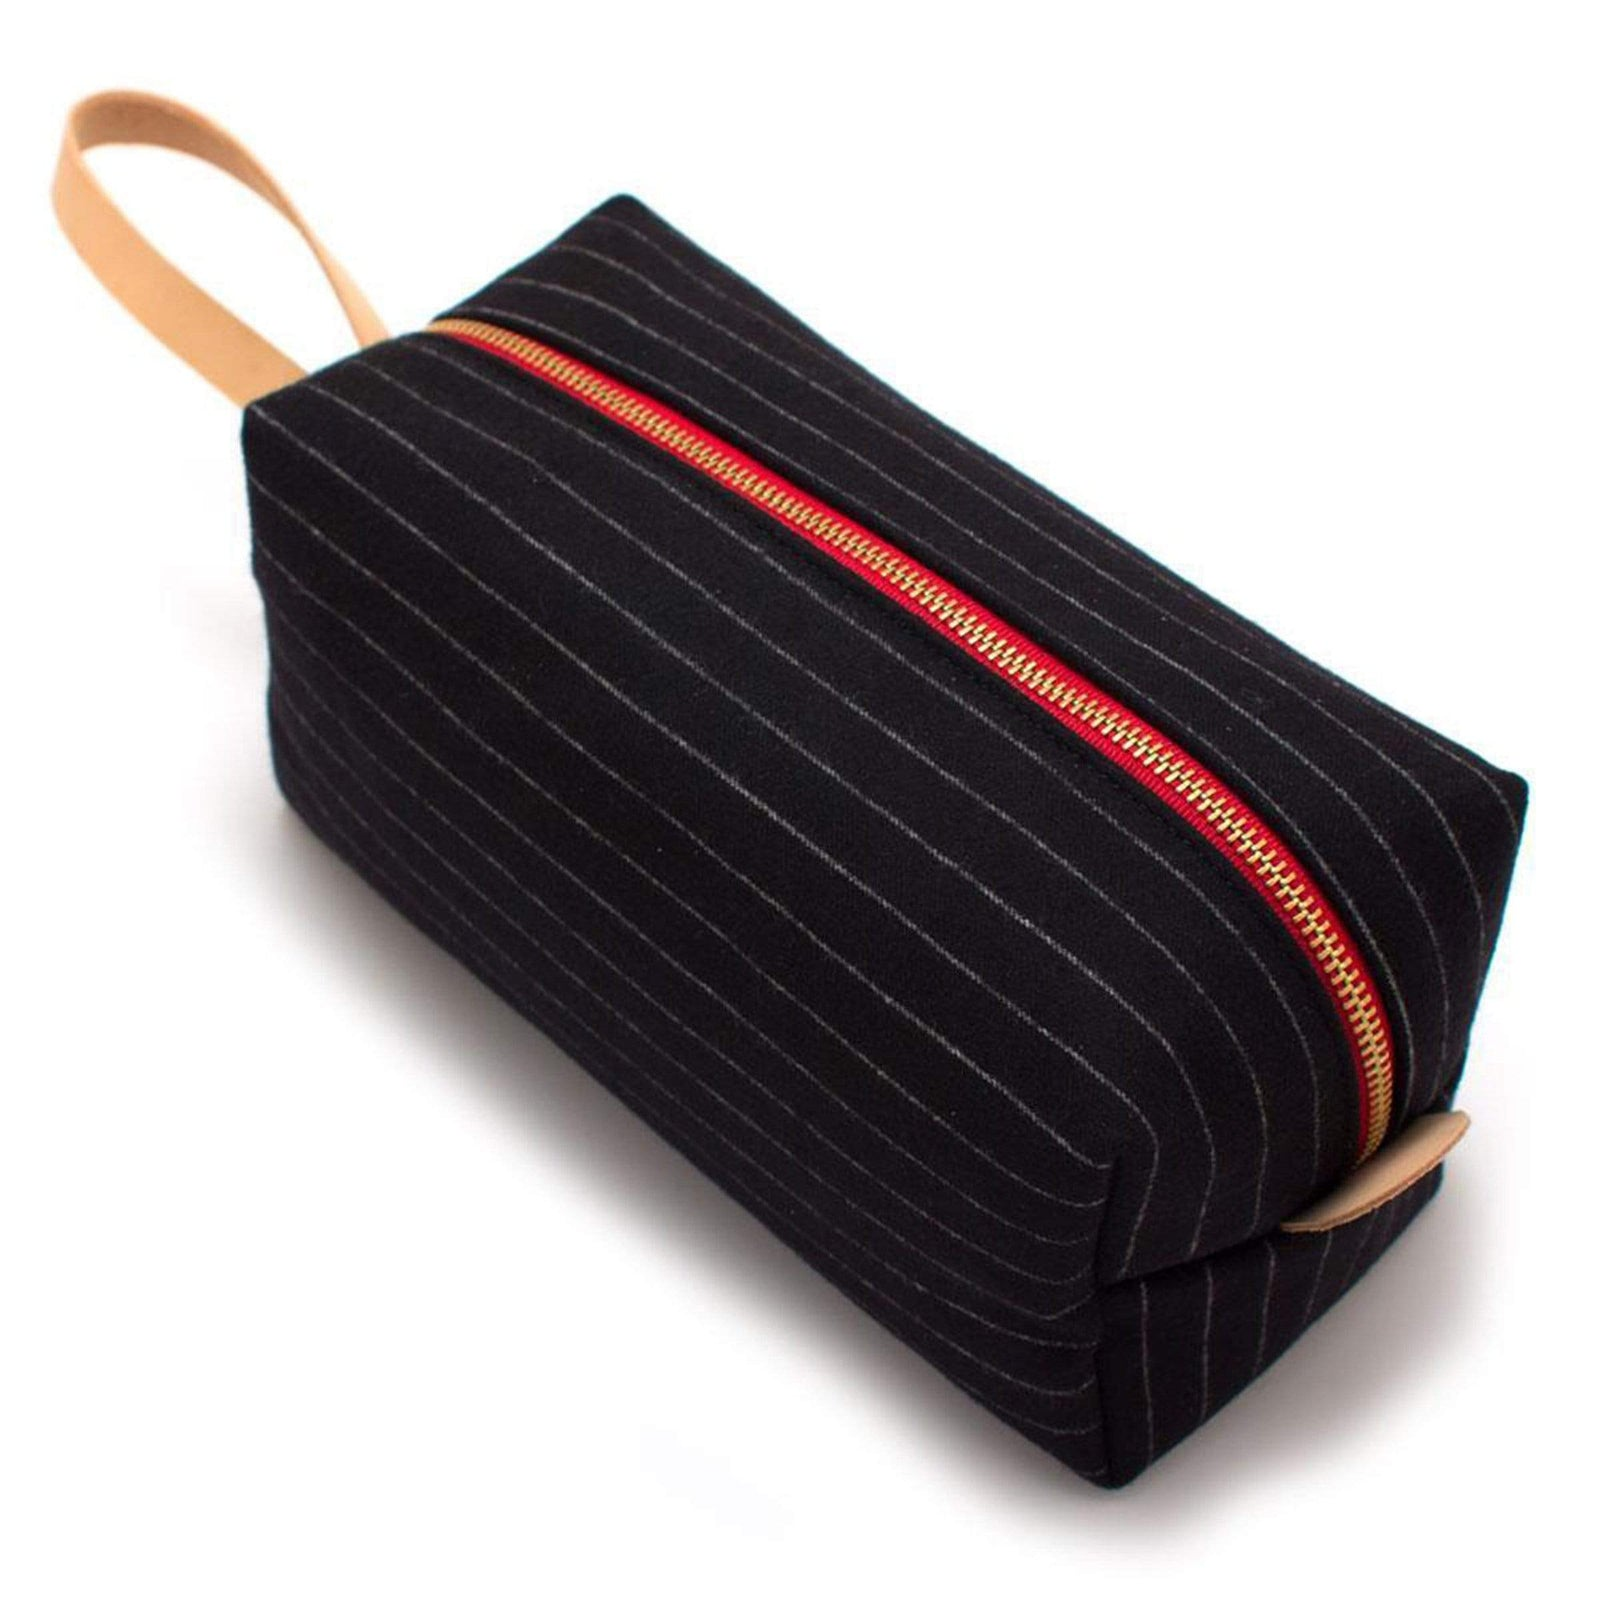 General Knot & Co. Tote Charcoal Stripe Wool Travel Kit